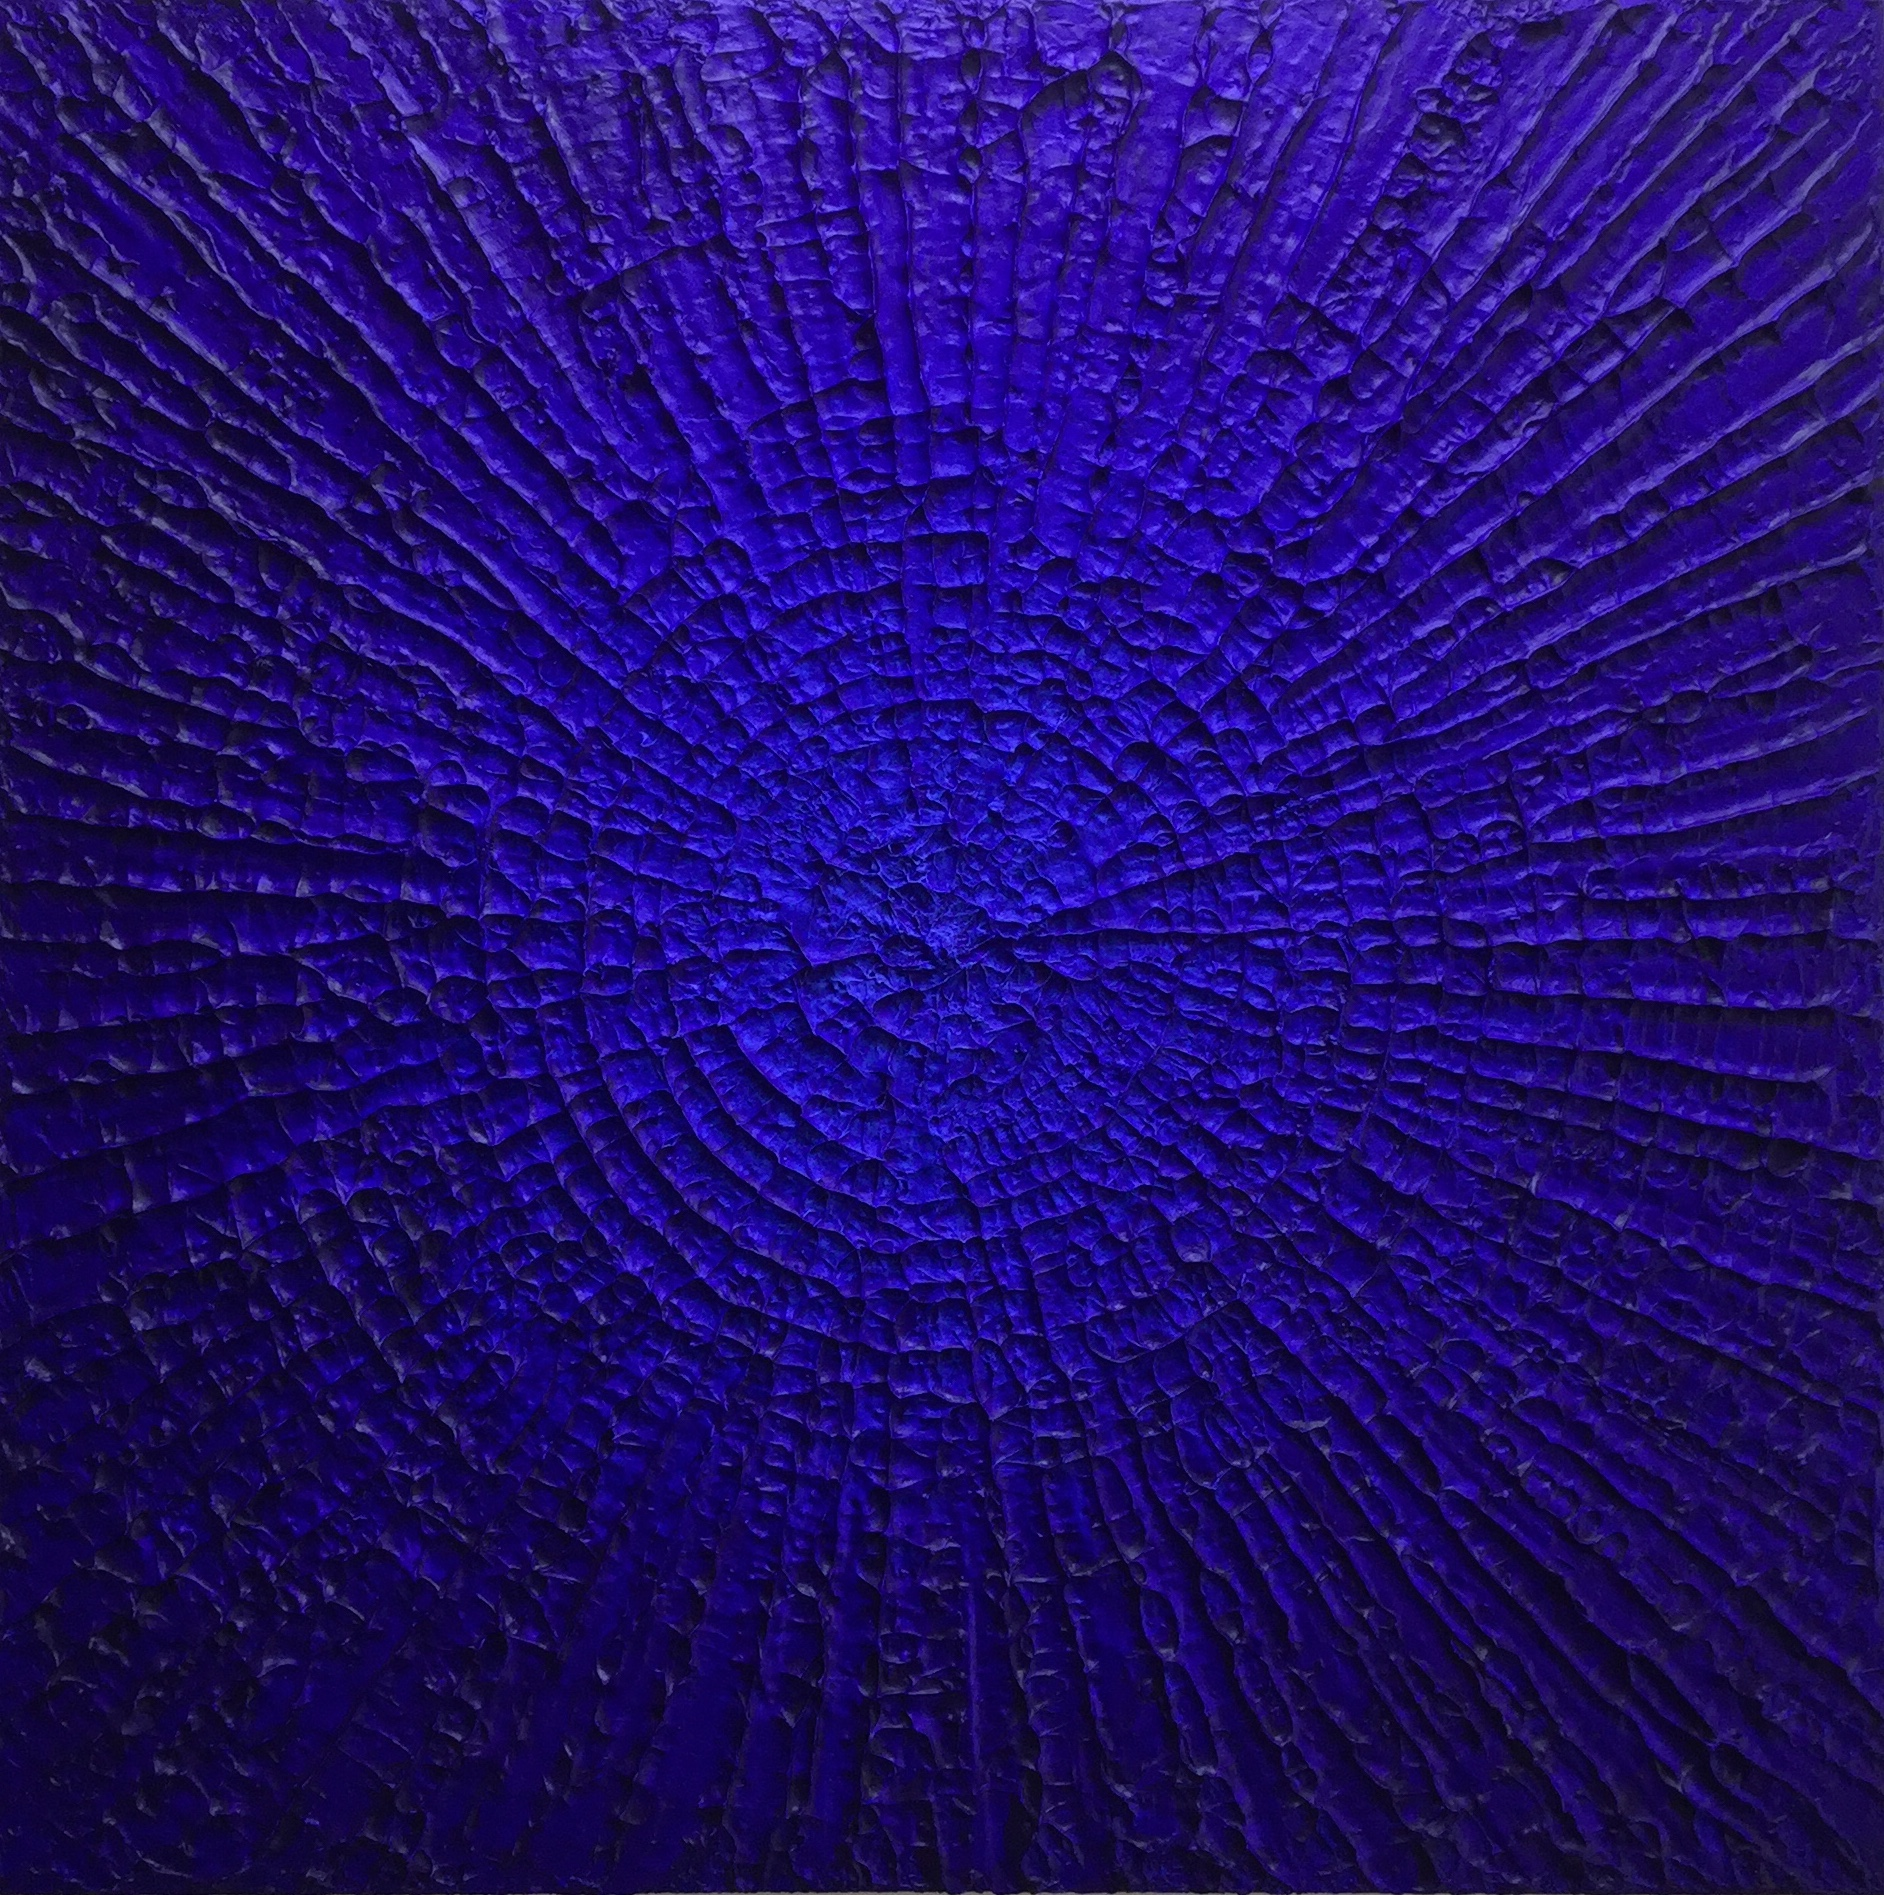 Texture And Blue Acrylic On Board (Framed) - £295